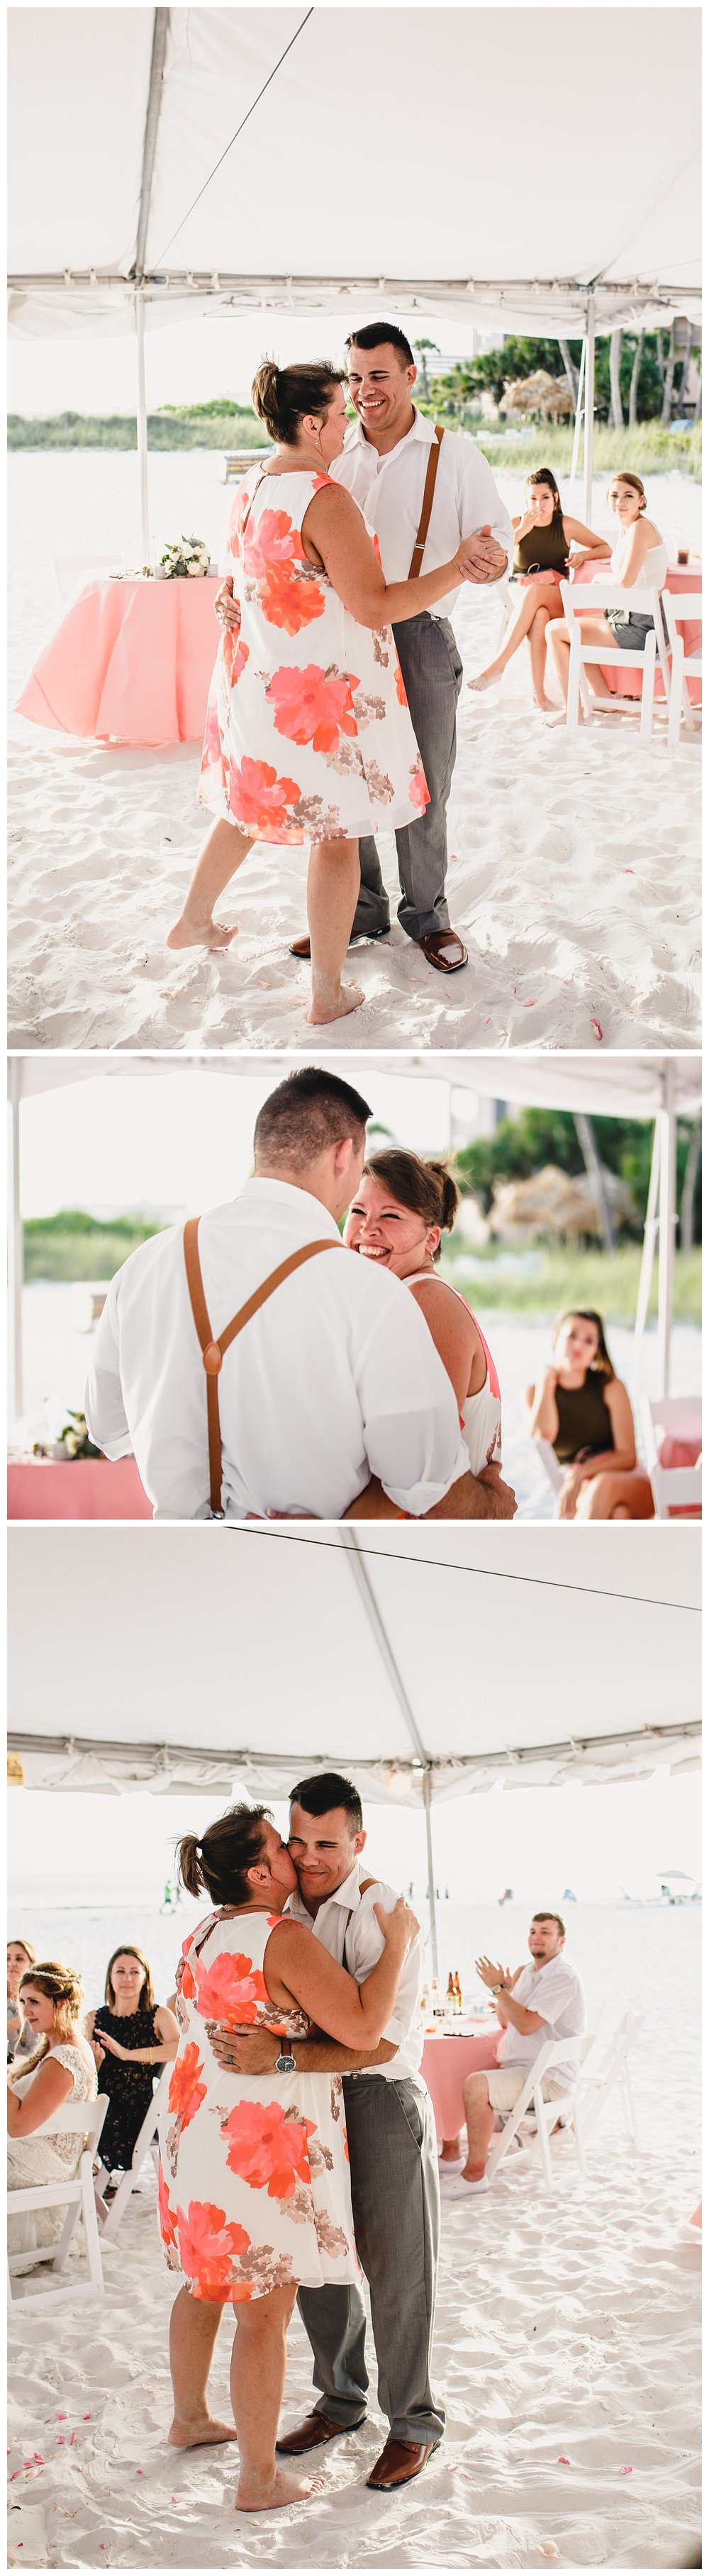 Kelsey_Diane_Photography_Destination_Wedding_Sarasota_Florida_Beach_Wedding_Alex_Austin_0670.jpg